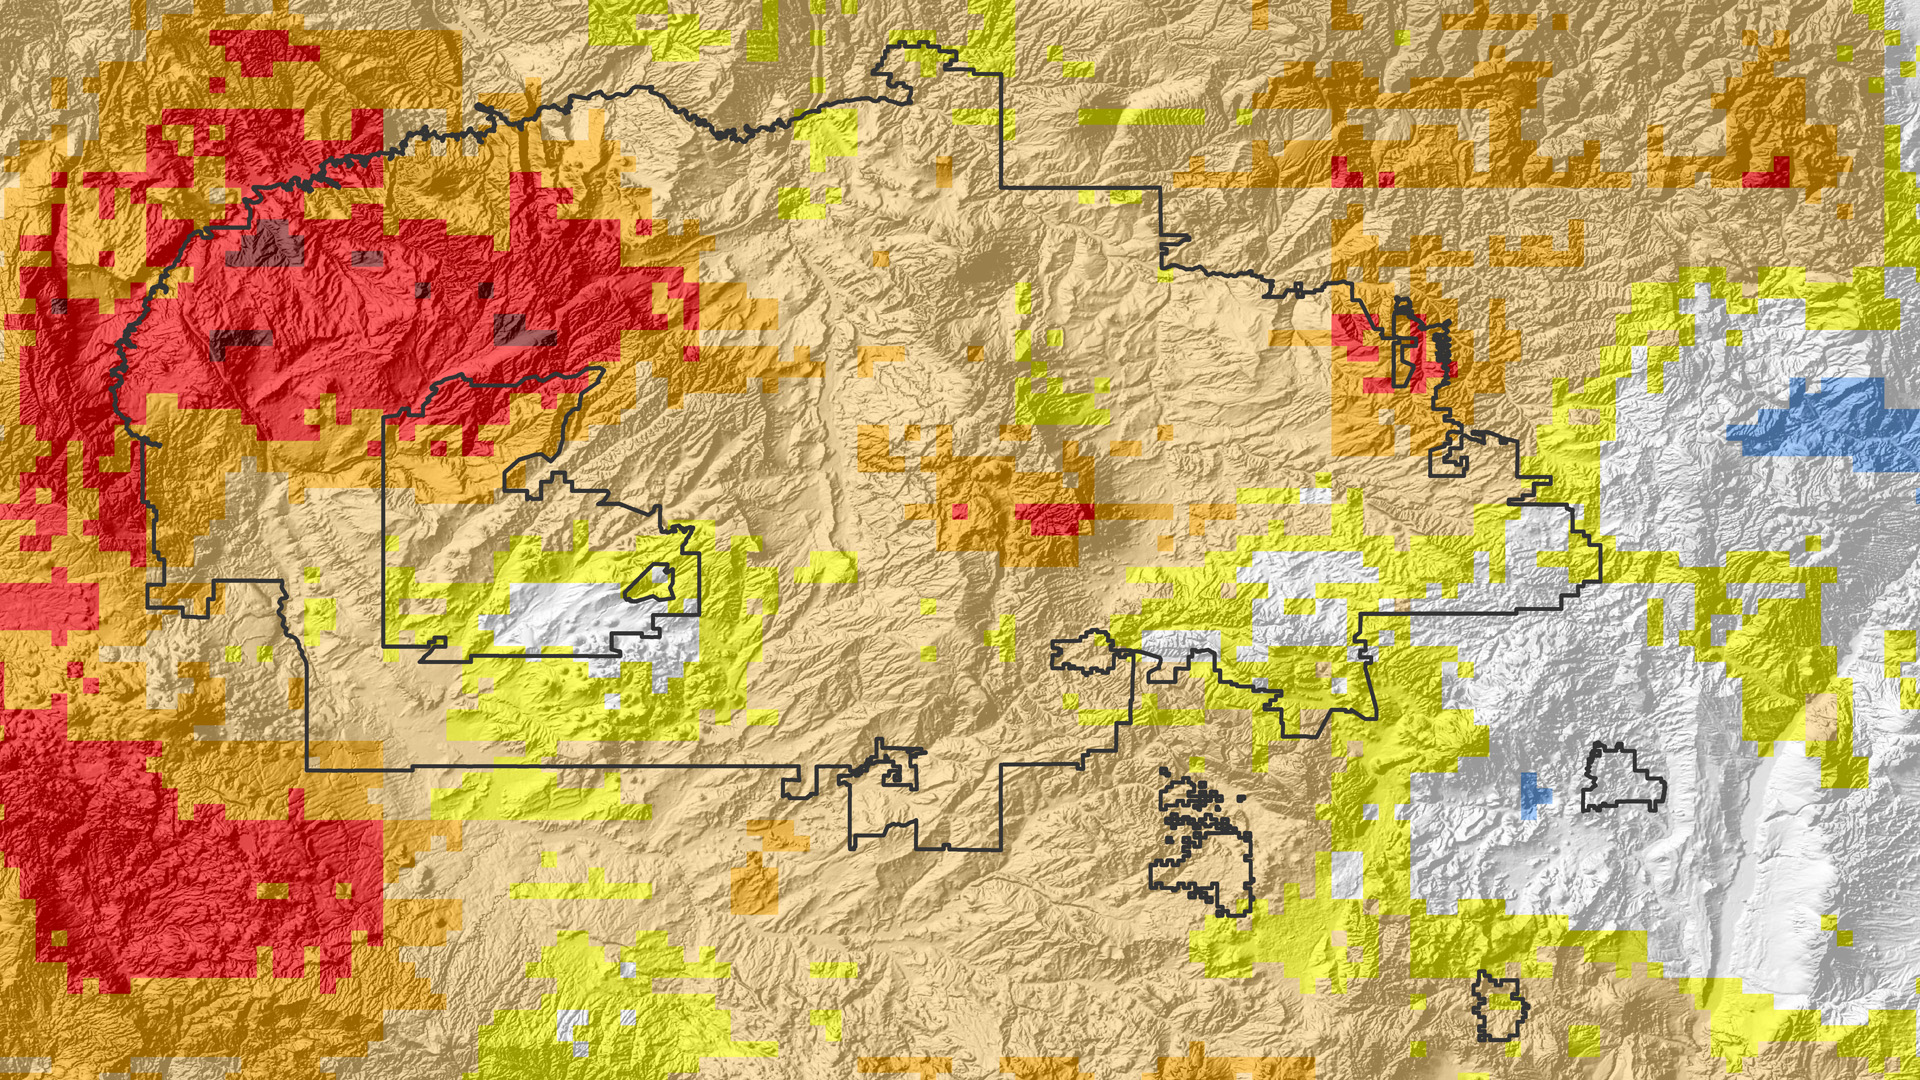 Spatial And Inter Annual Variability Of Drivers Of Drought In The Navajo Nation